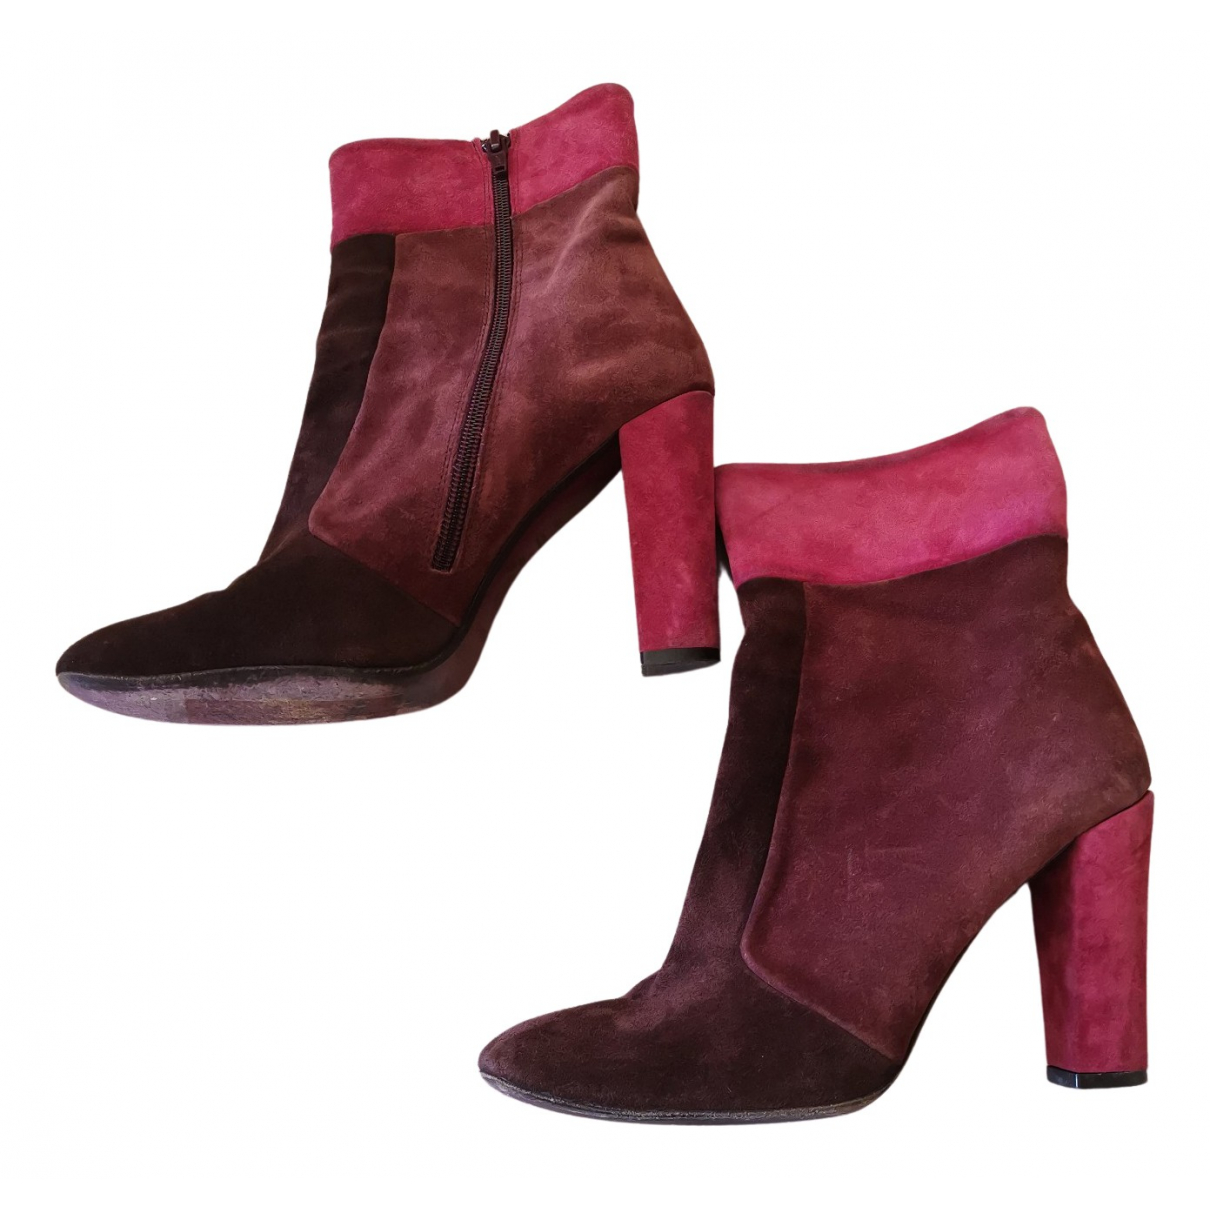 Maliparmi N Burgundy Suede Ankle boots for Women 39 EU